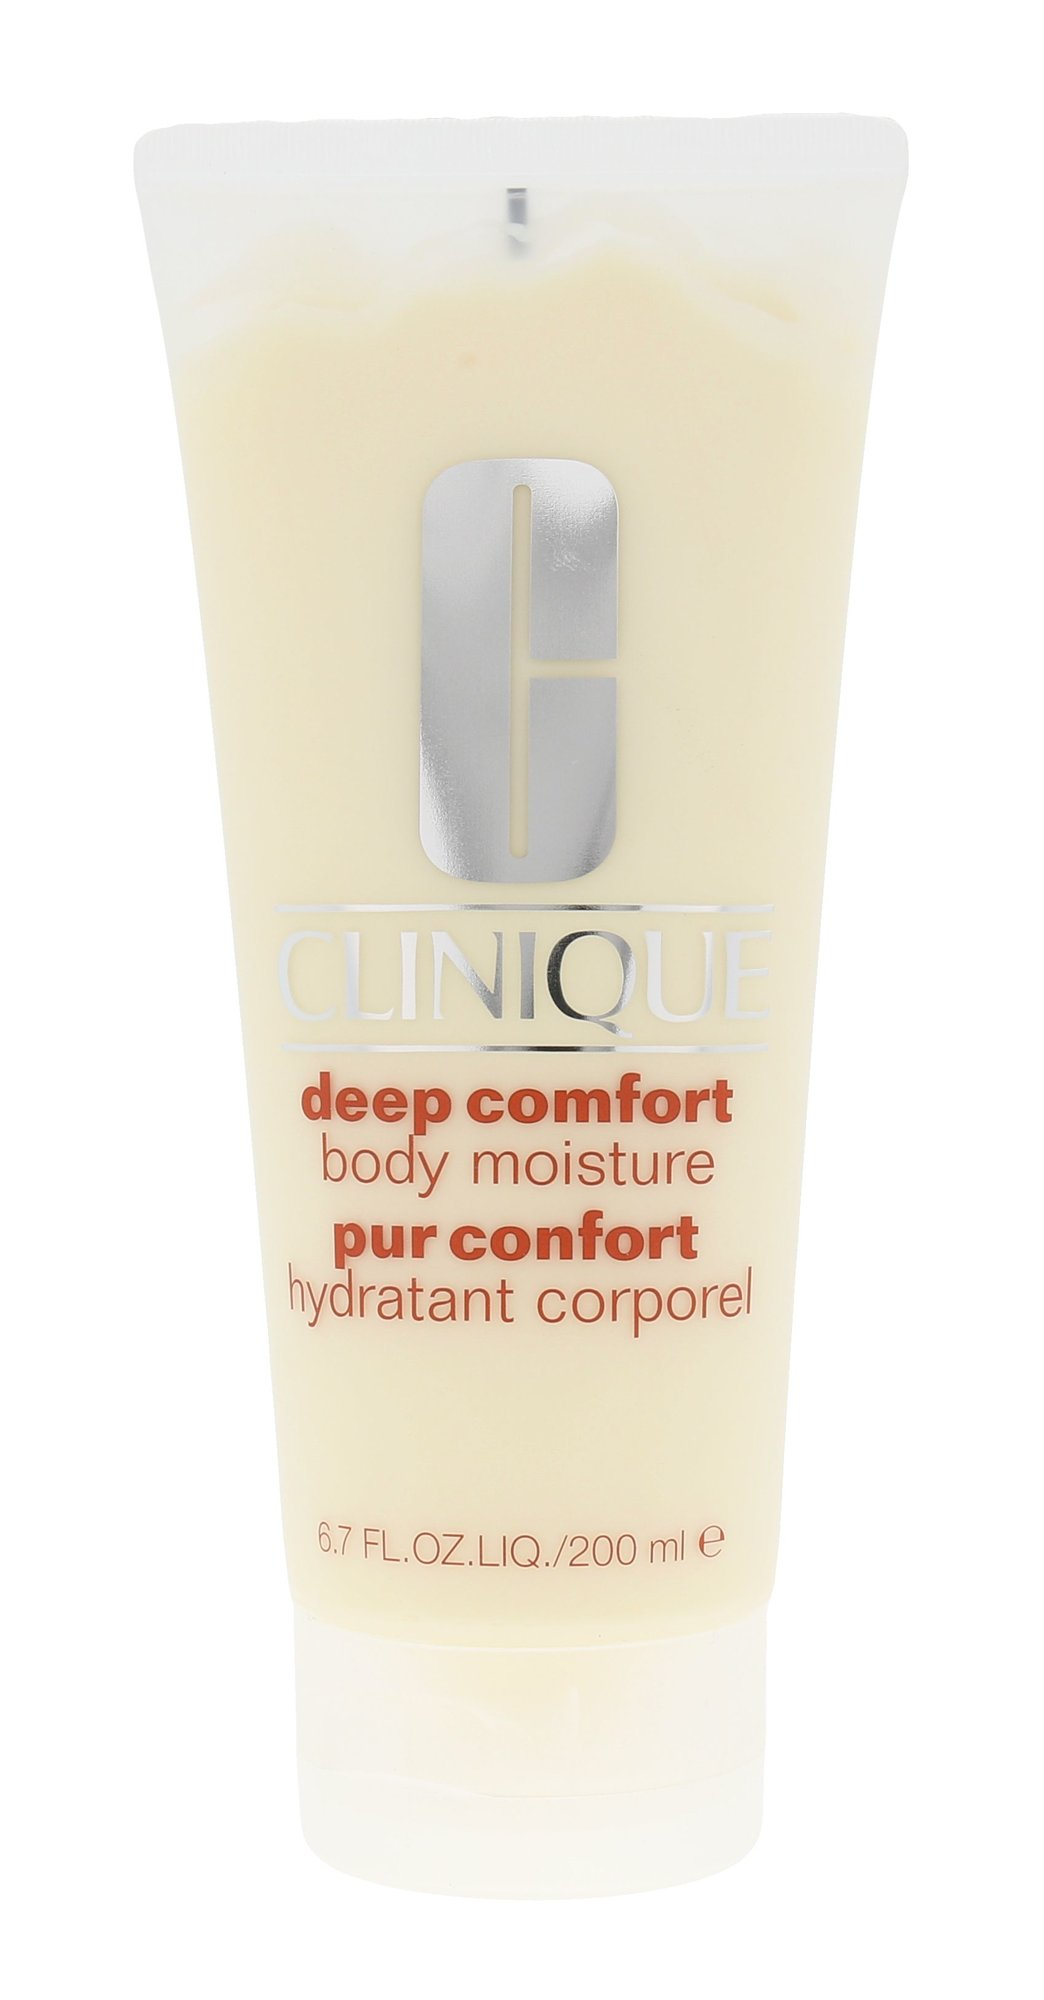 Clinique Deep Comfort Cosmetic 200ml  Body Moisture